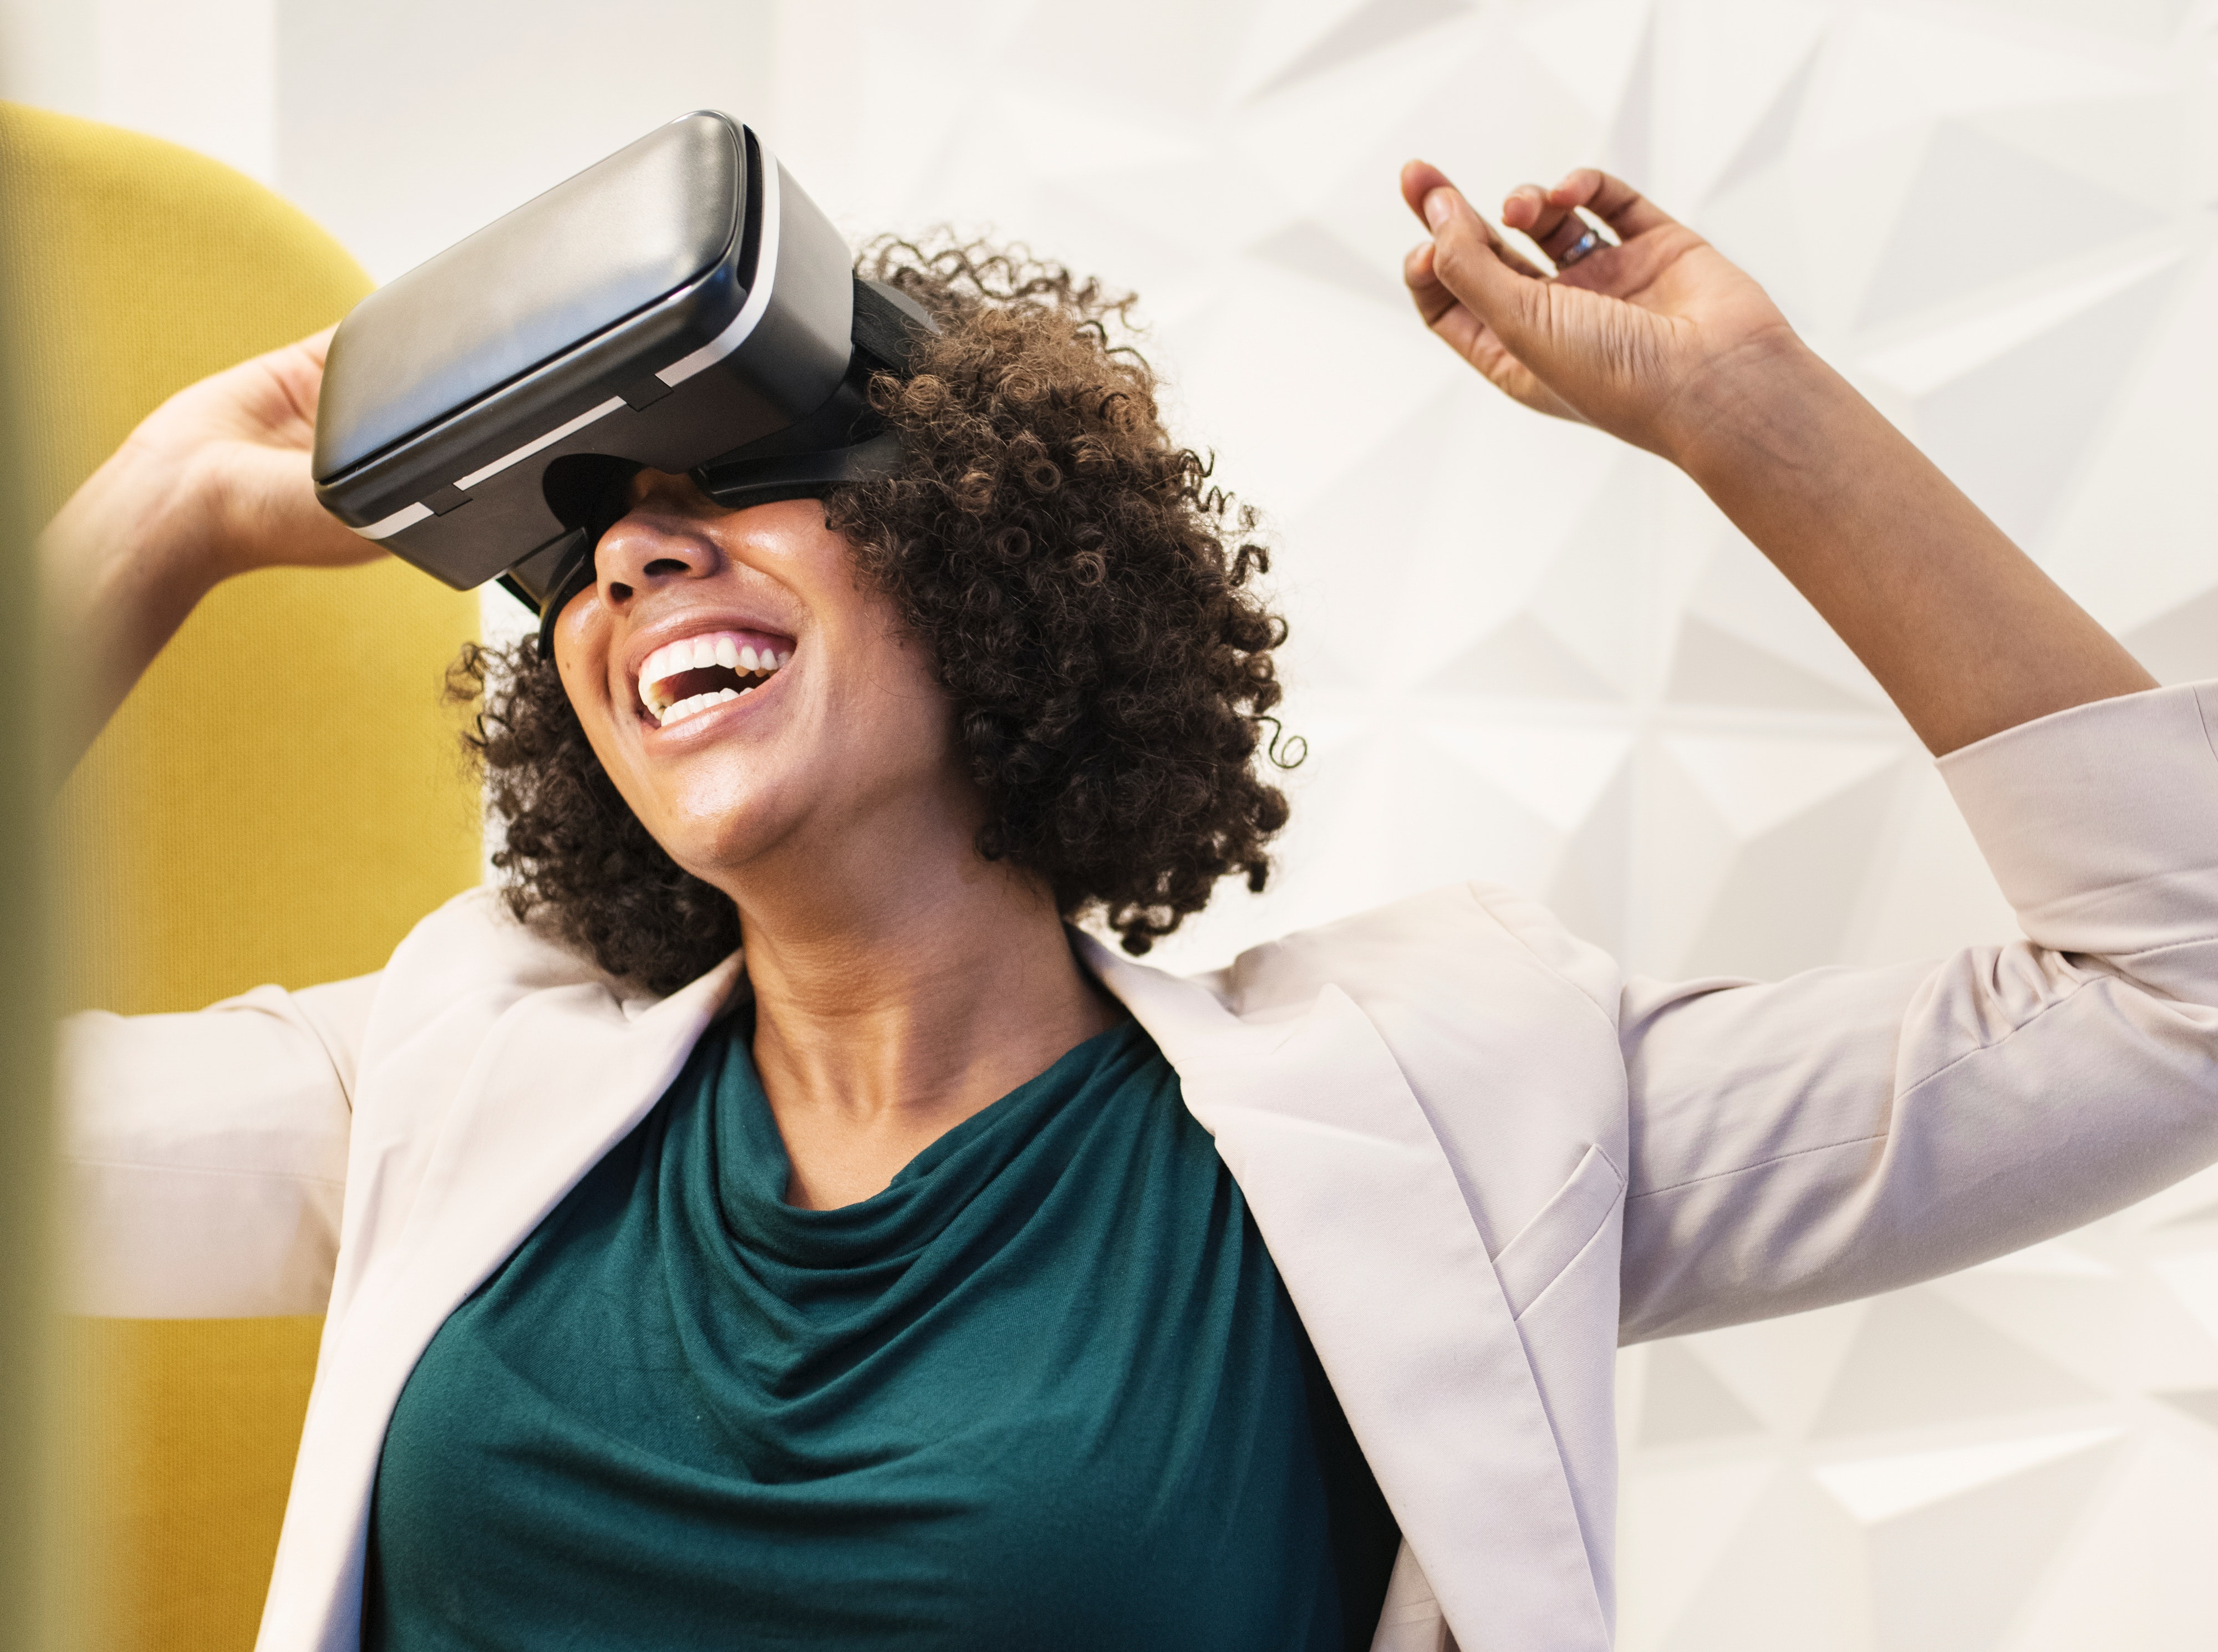 The VR Marketing Hype and Why You Should Join In